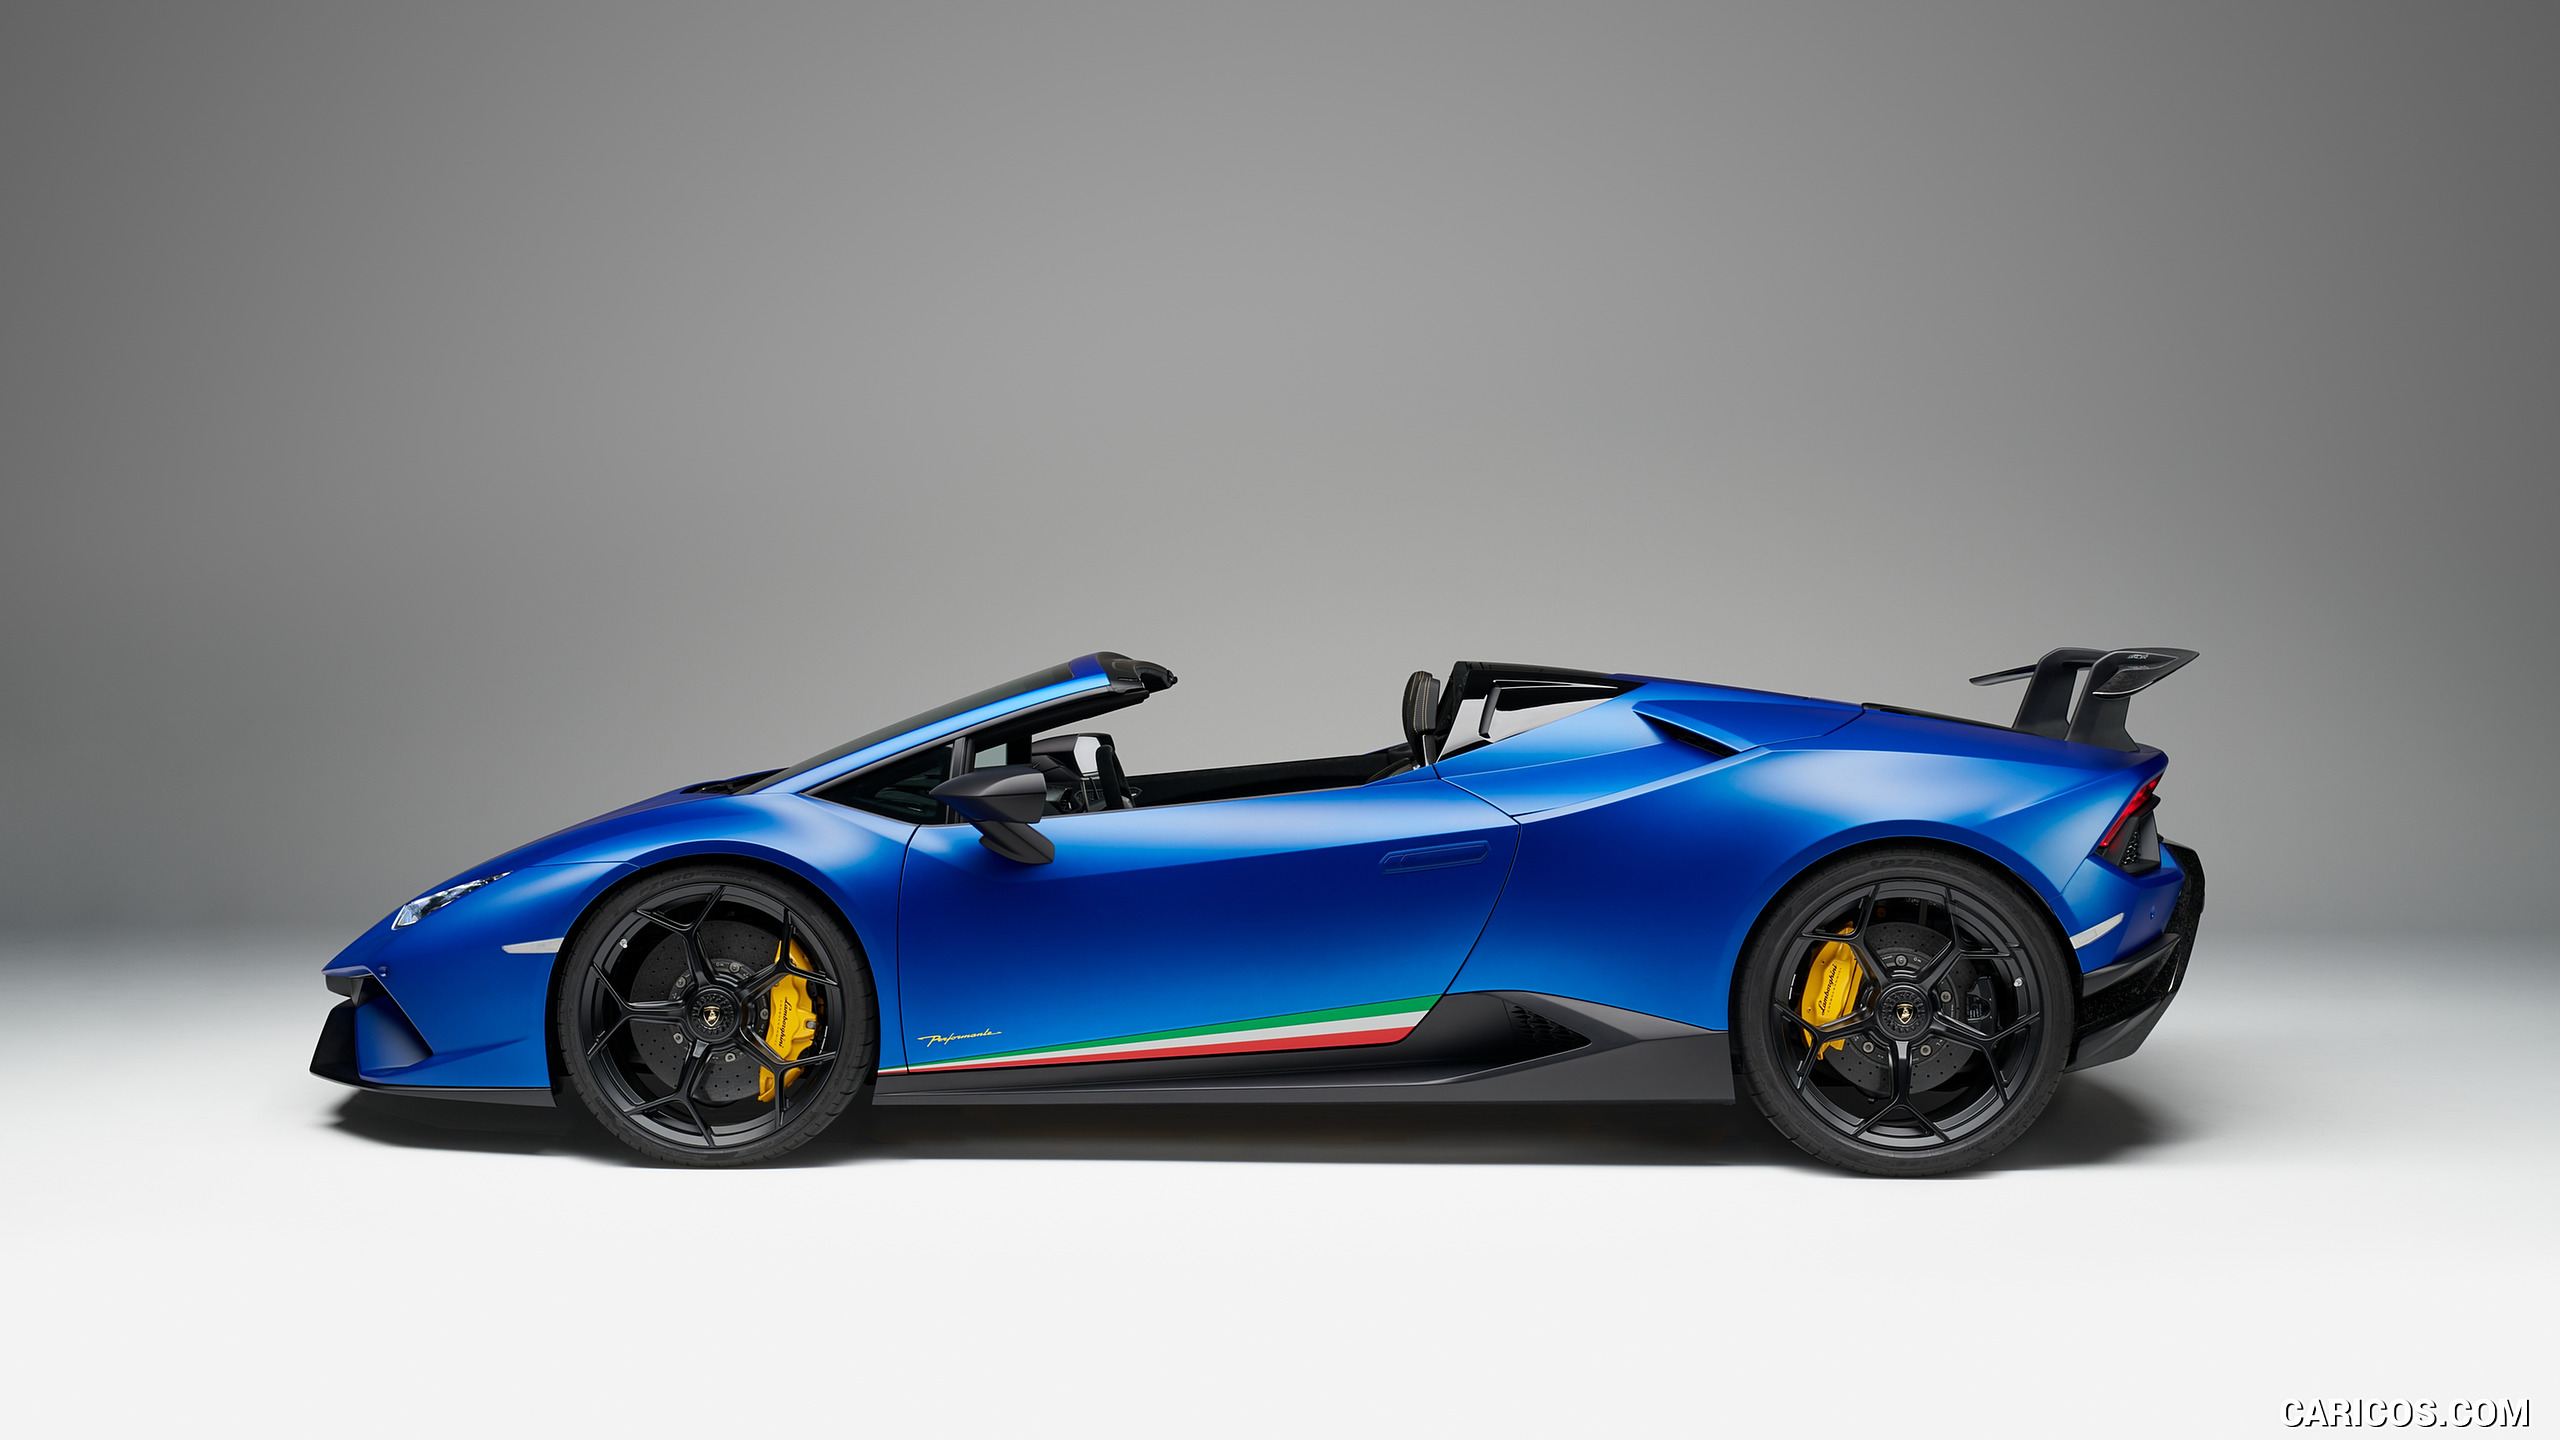 2019 Lamborghini Huracn Spyder Performante   Side HD Wallpaper 13 2560x1440